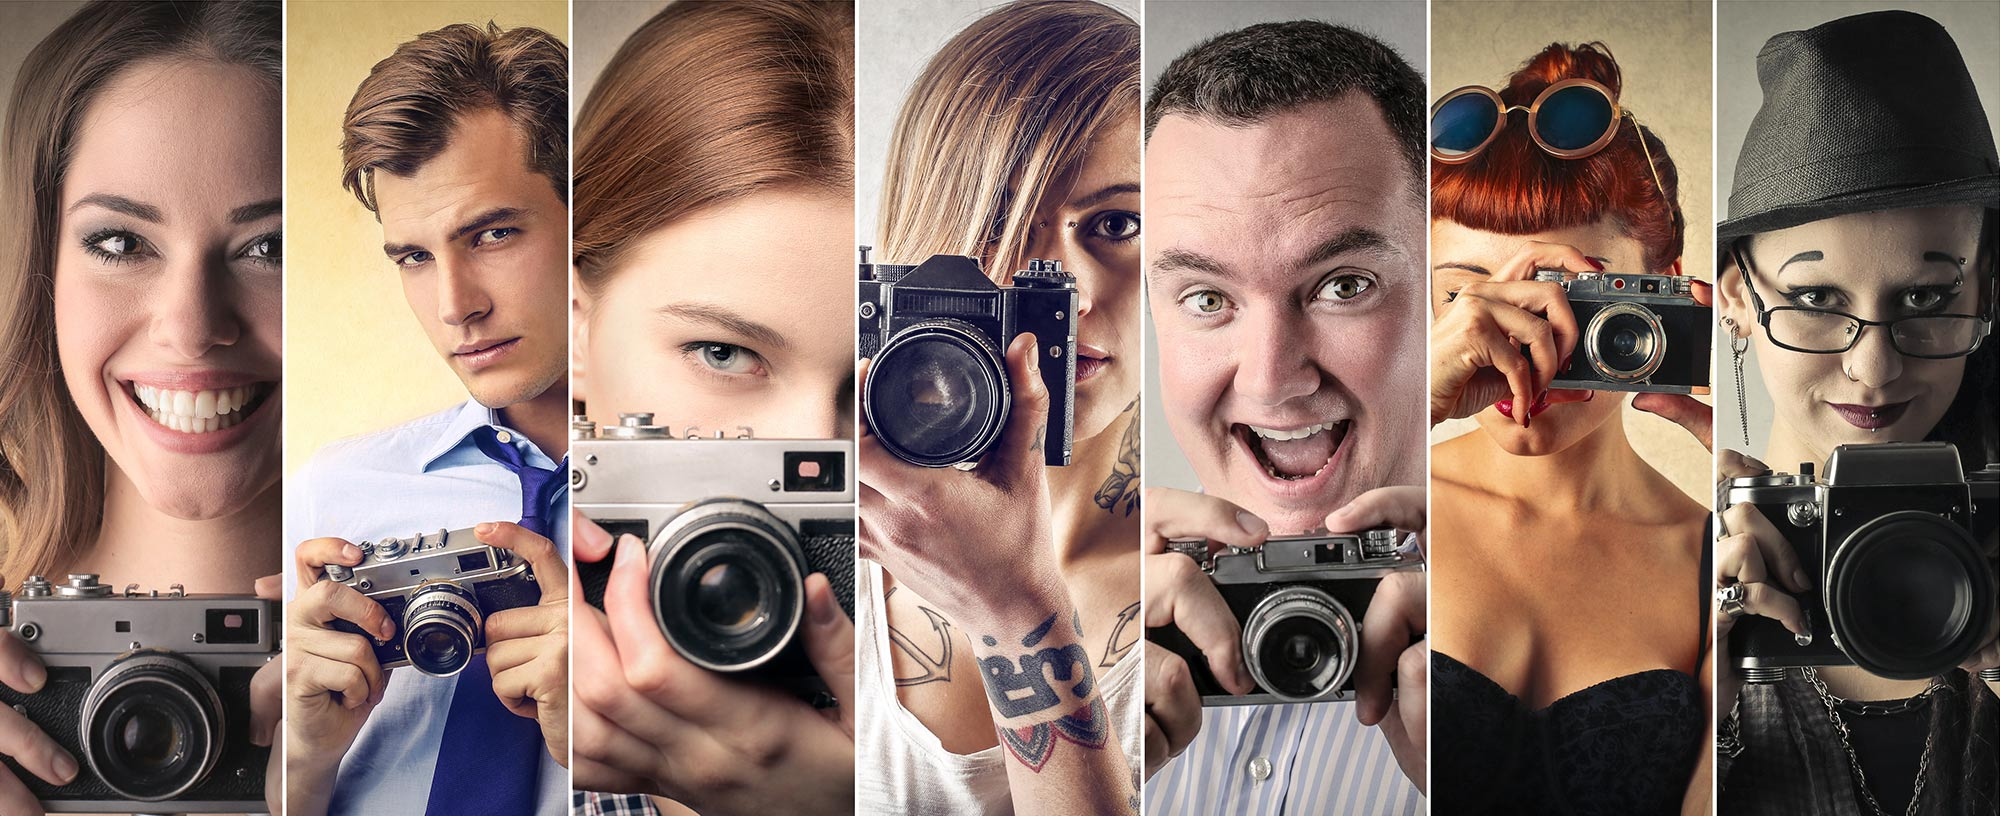 Image result for photography classes images